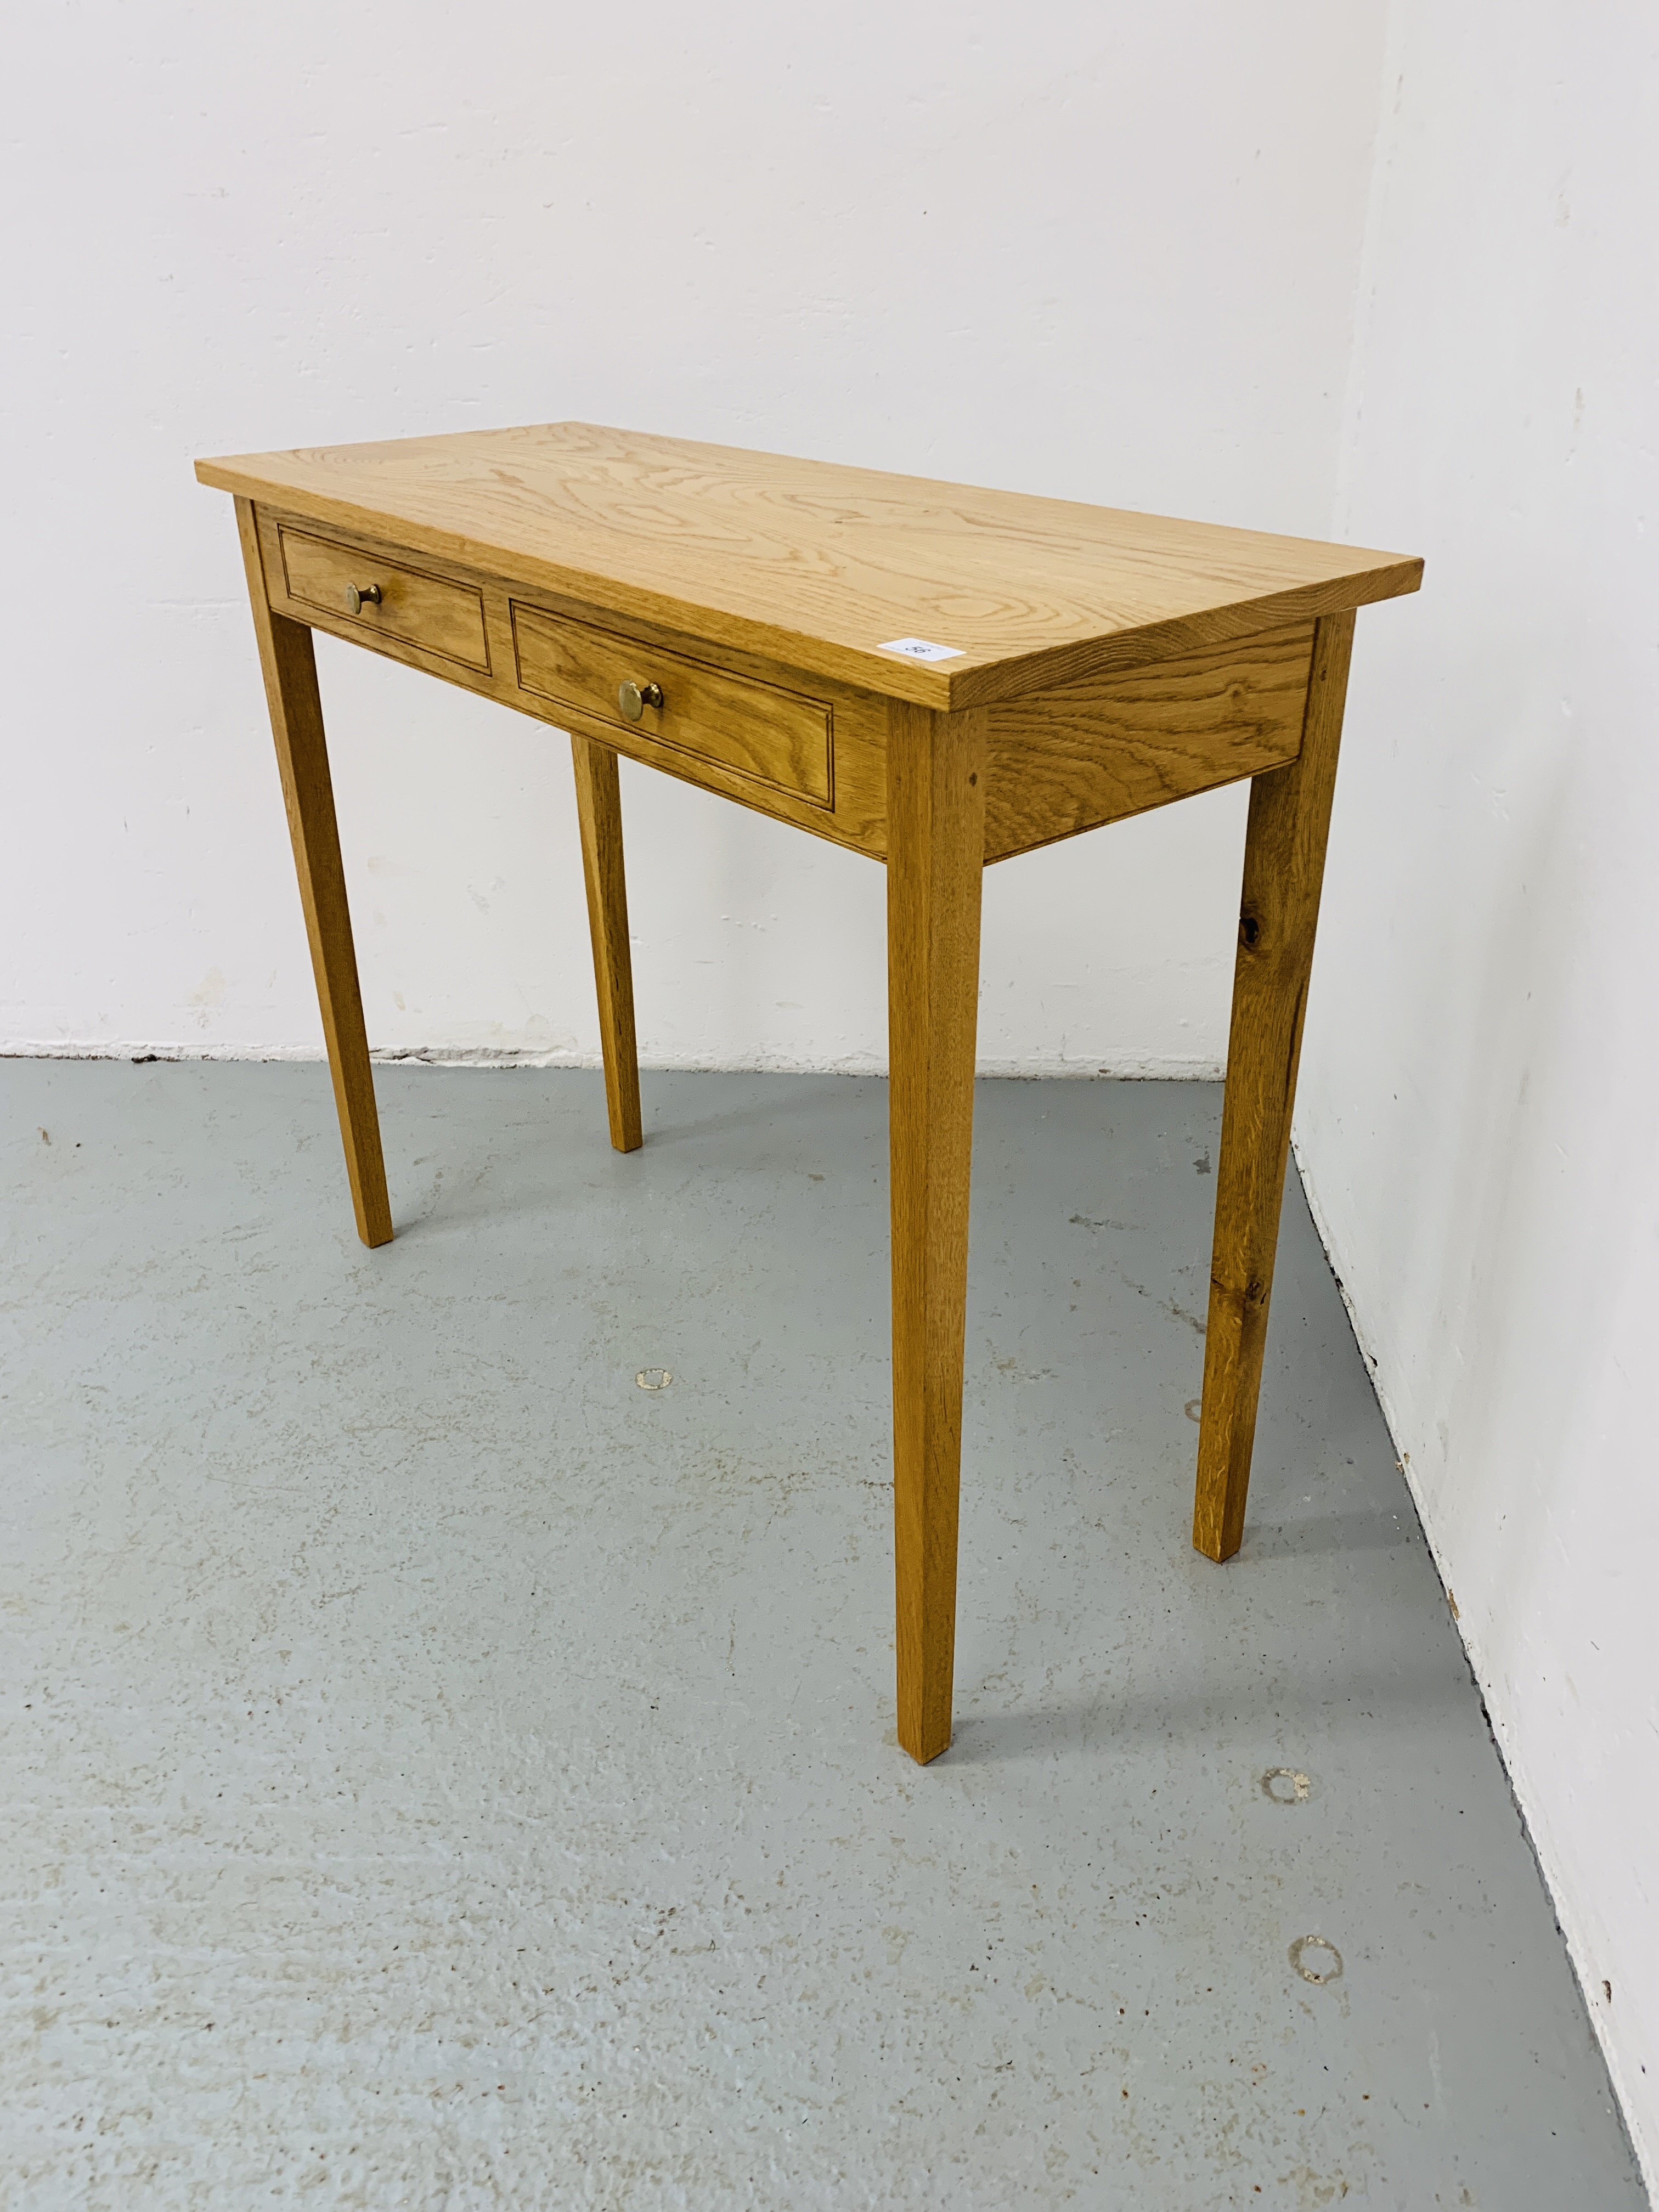 A SMALL LIGHT OAK TWO DRAWER SIDE TABLE 85CM X 34CM - Image 4 of 7